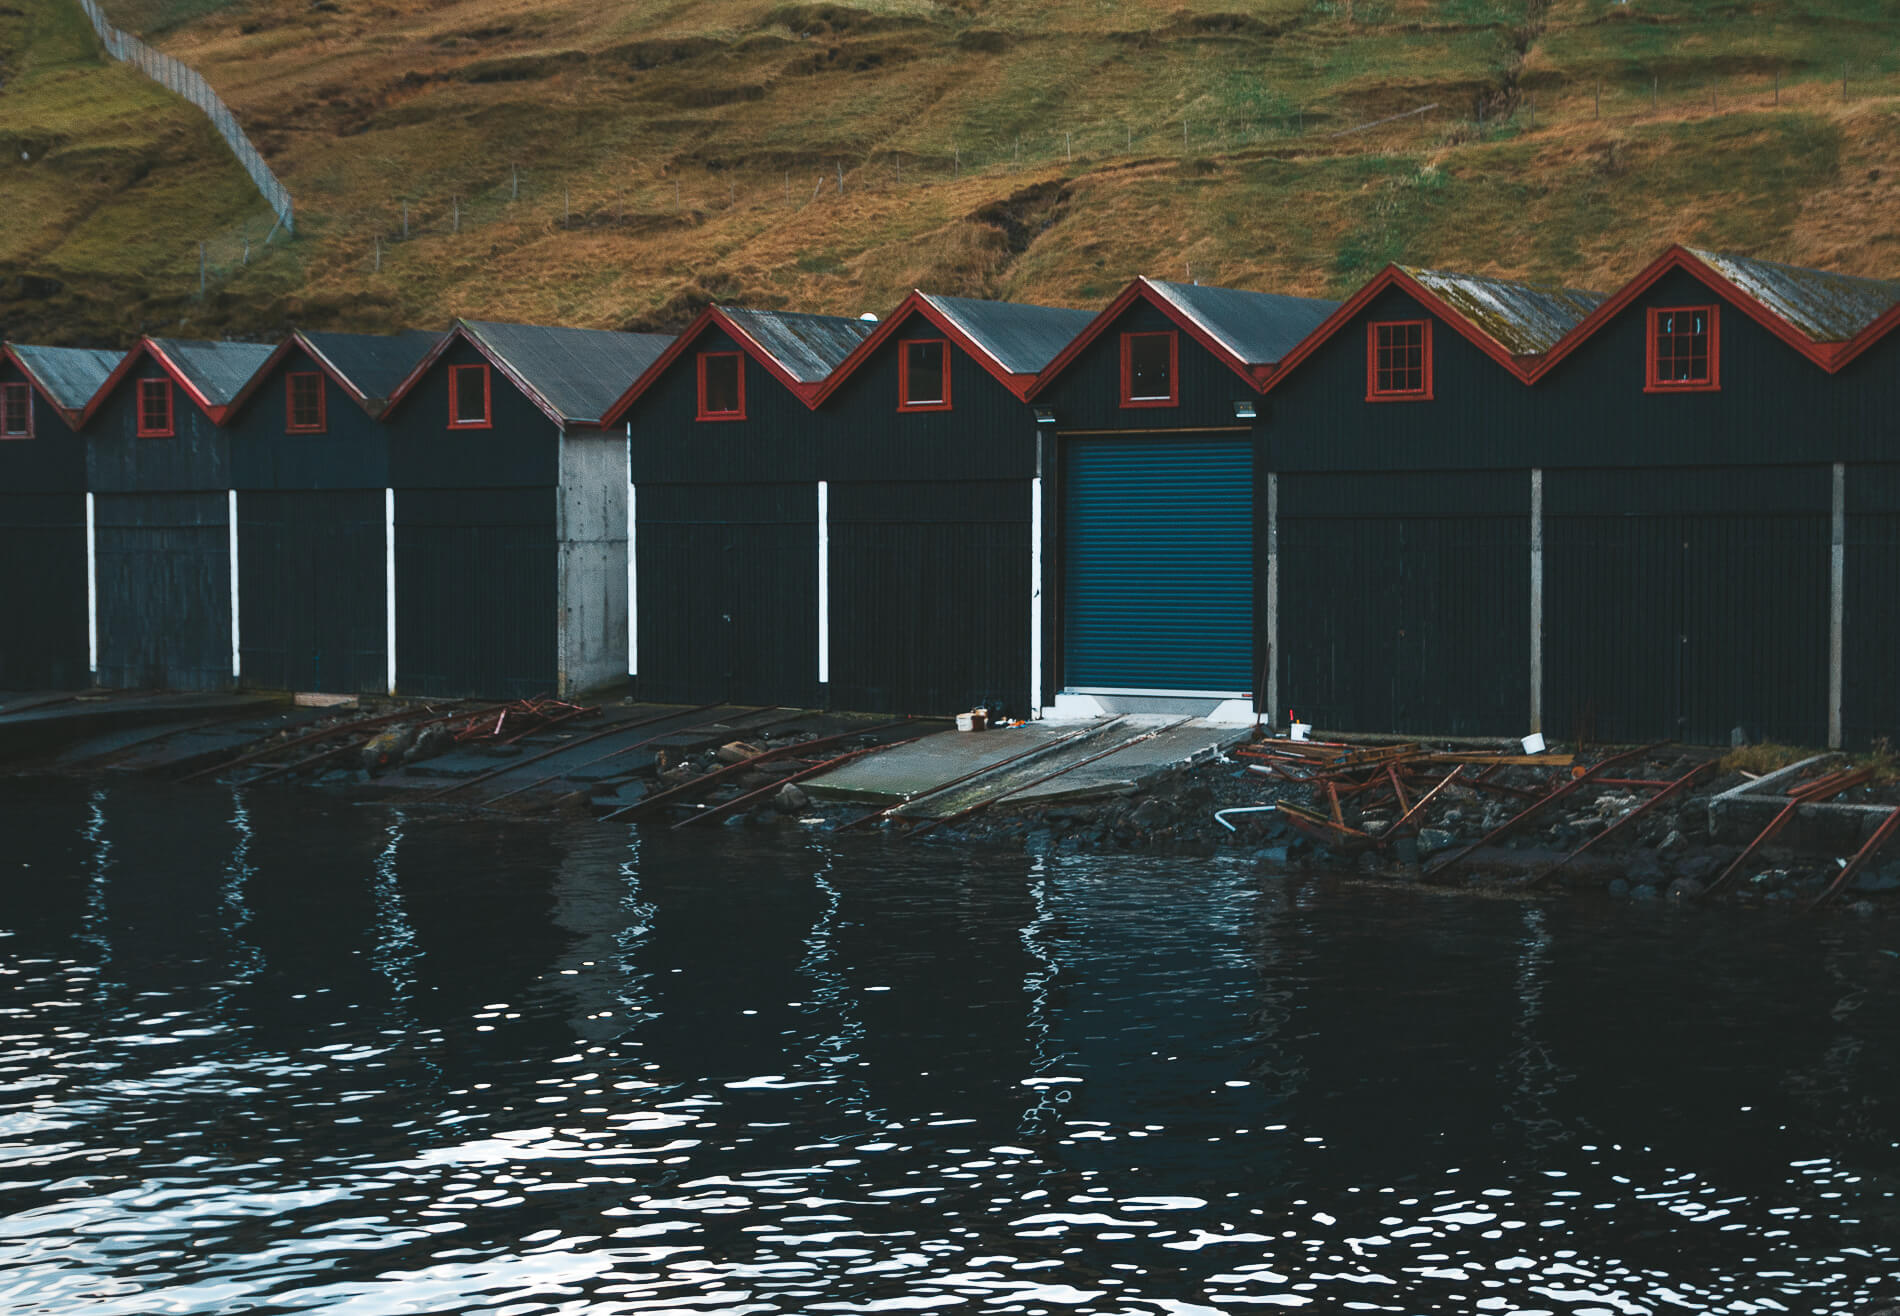 Colourful boatsheds Vestamanna, faroe islands facts, visit faroe islands